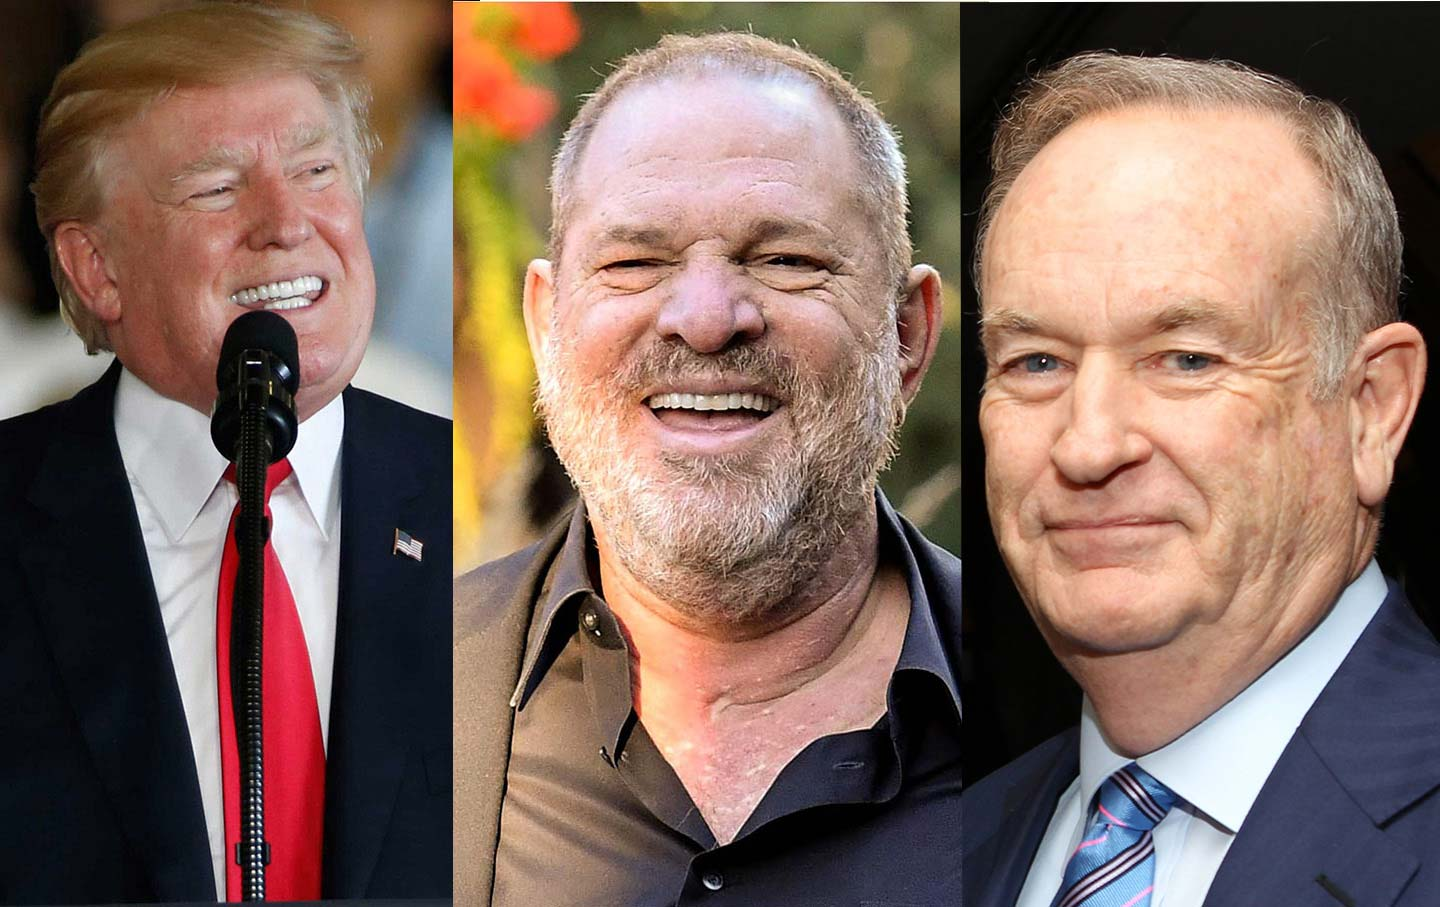 Trump, Weinstein and O'Reilly